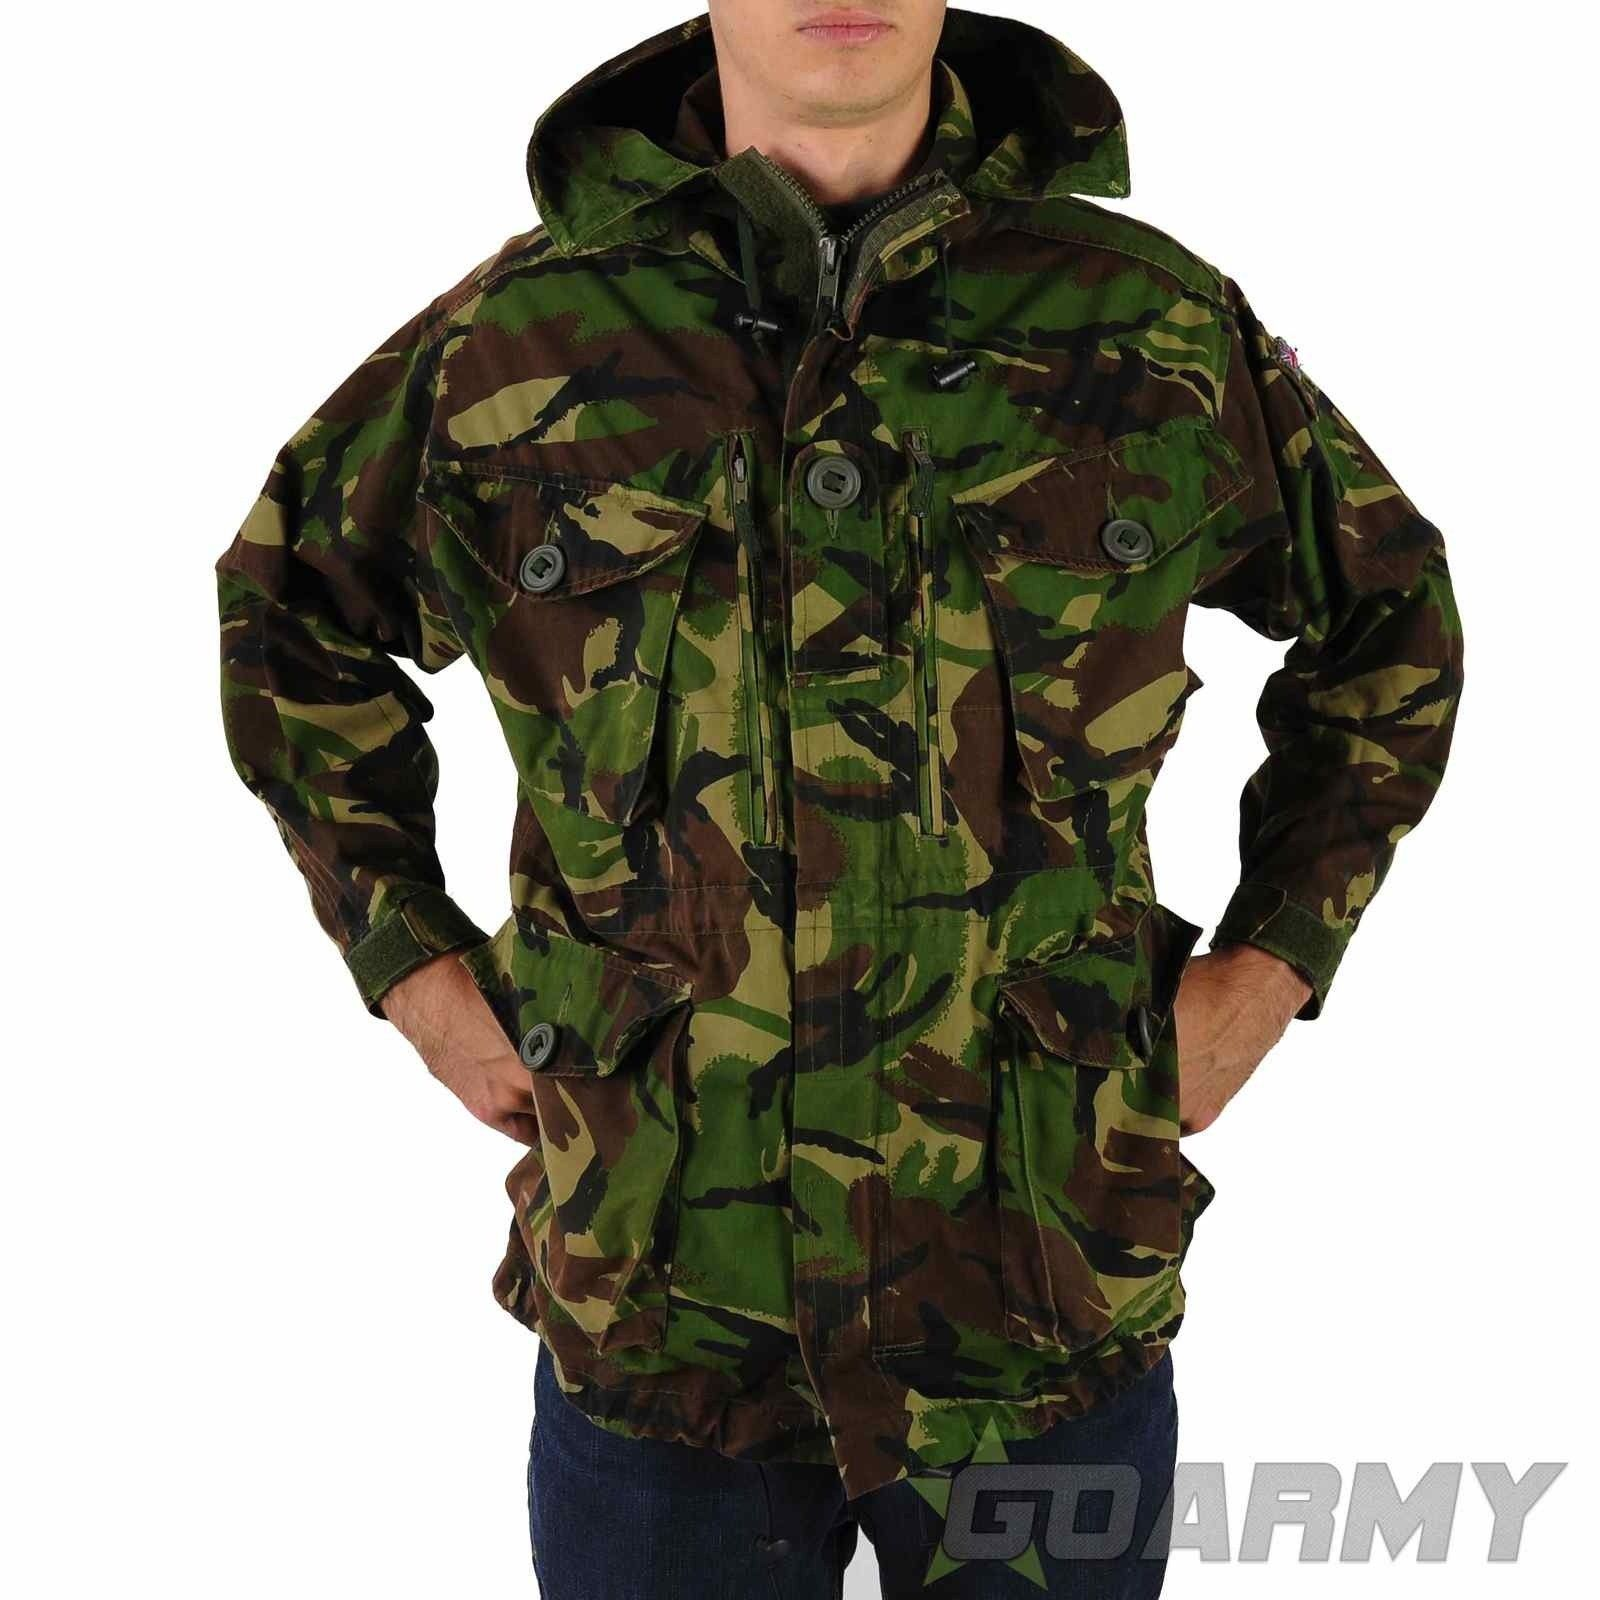 ARMY Traditional Camouflage Camo USA Troops Armed Forces Mens Hoodie Sweatshirt